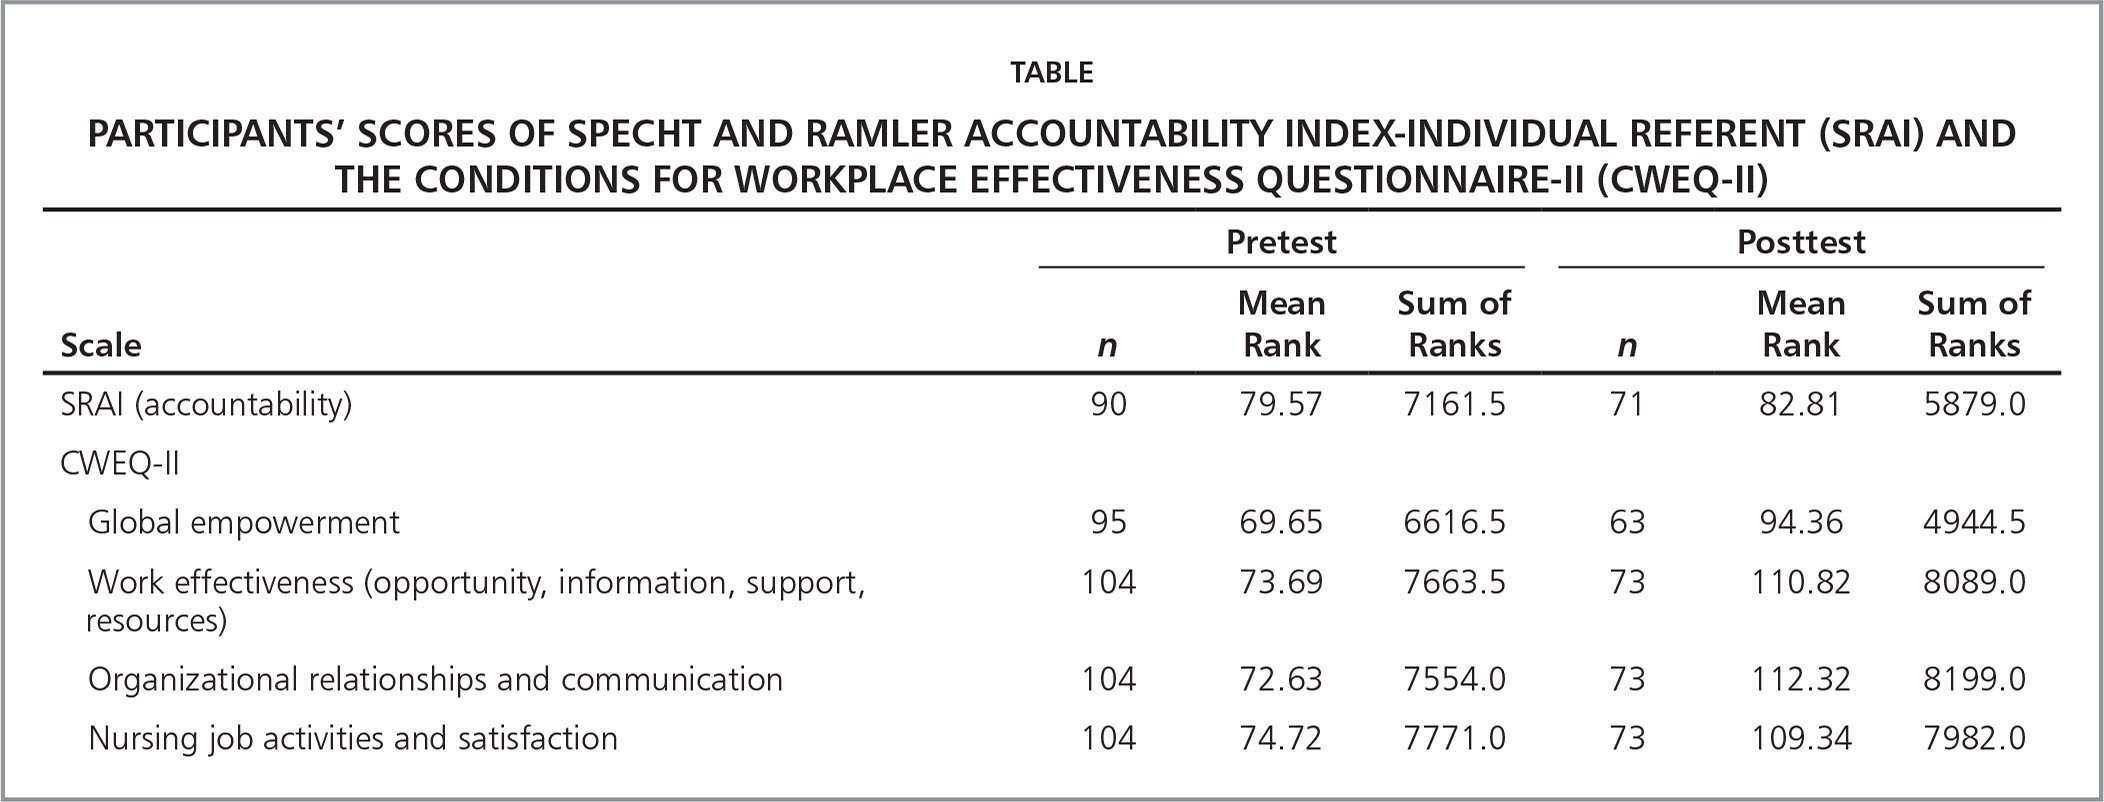 Participants' Scores of Specht and Ramler Accountability Index-Individual Referent (SRAI) and the Conditions for Workplace Effectiveness Questionnaire-II (CWEQ-II)